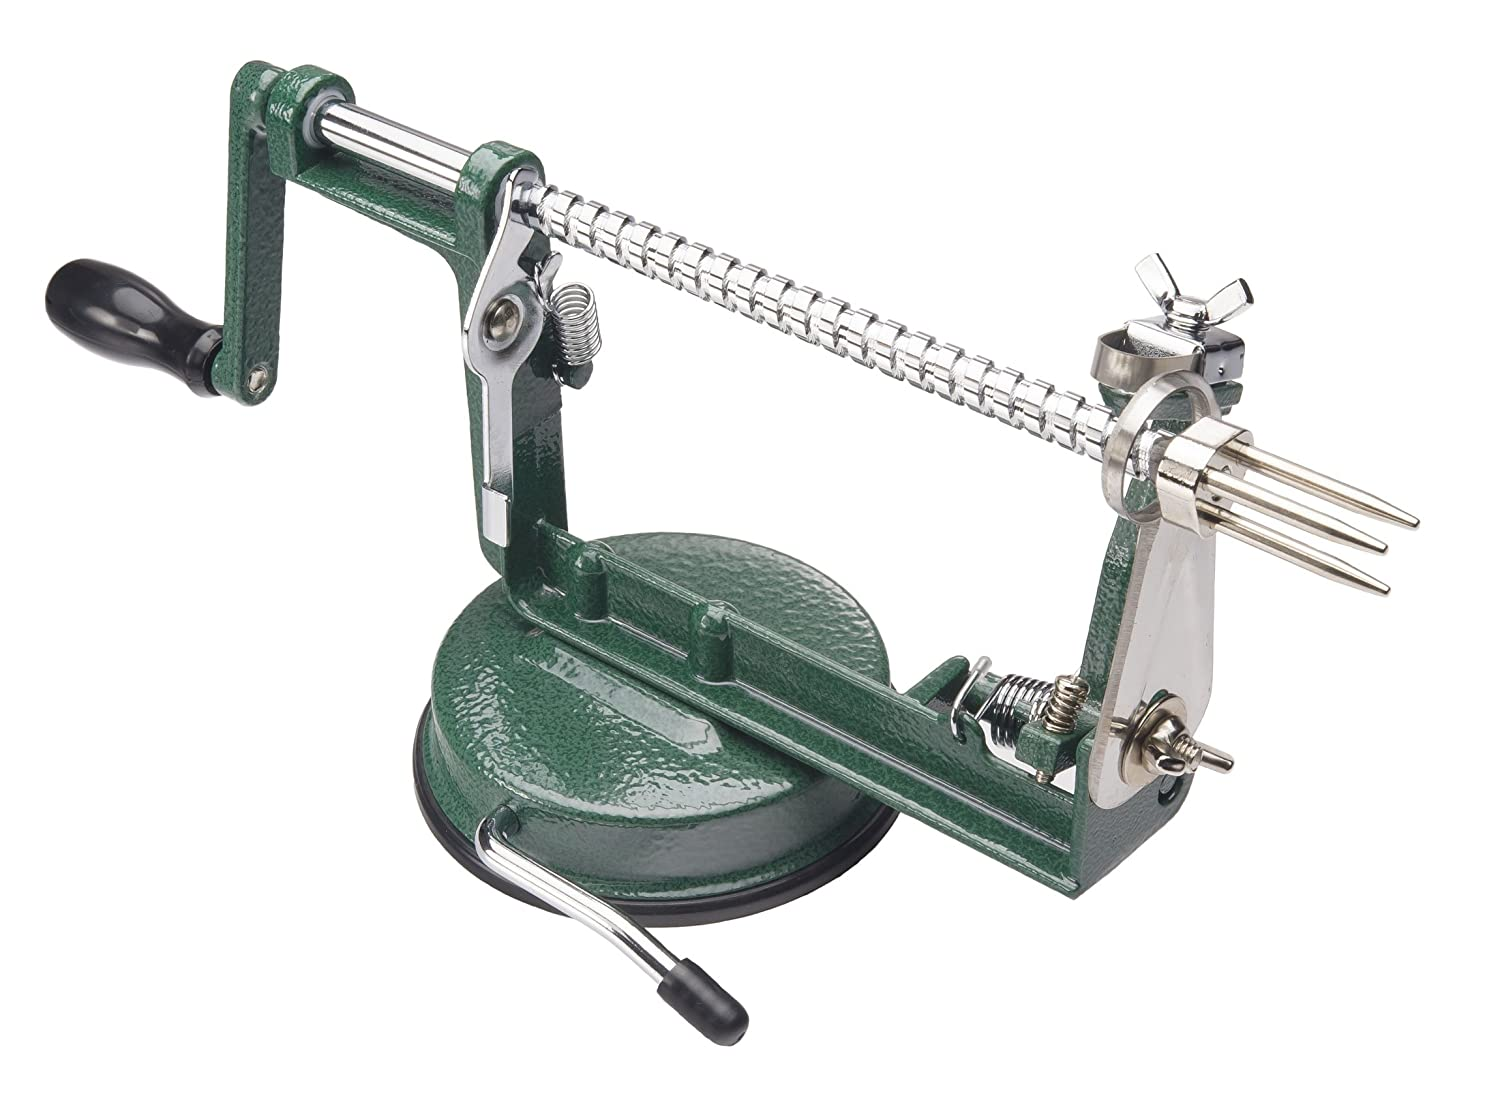 Green Lem Products 662 Apple Potato Peeler Graters Peelers Slicers Kitchen Utensils Gadgets One Acleaning Com